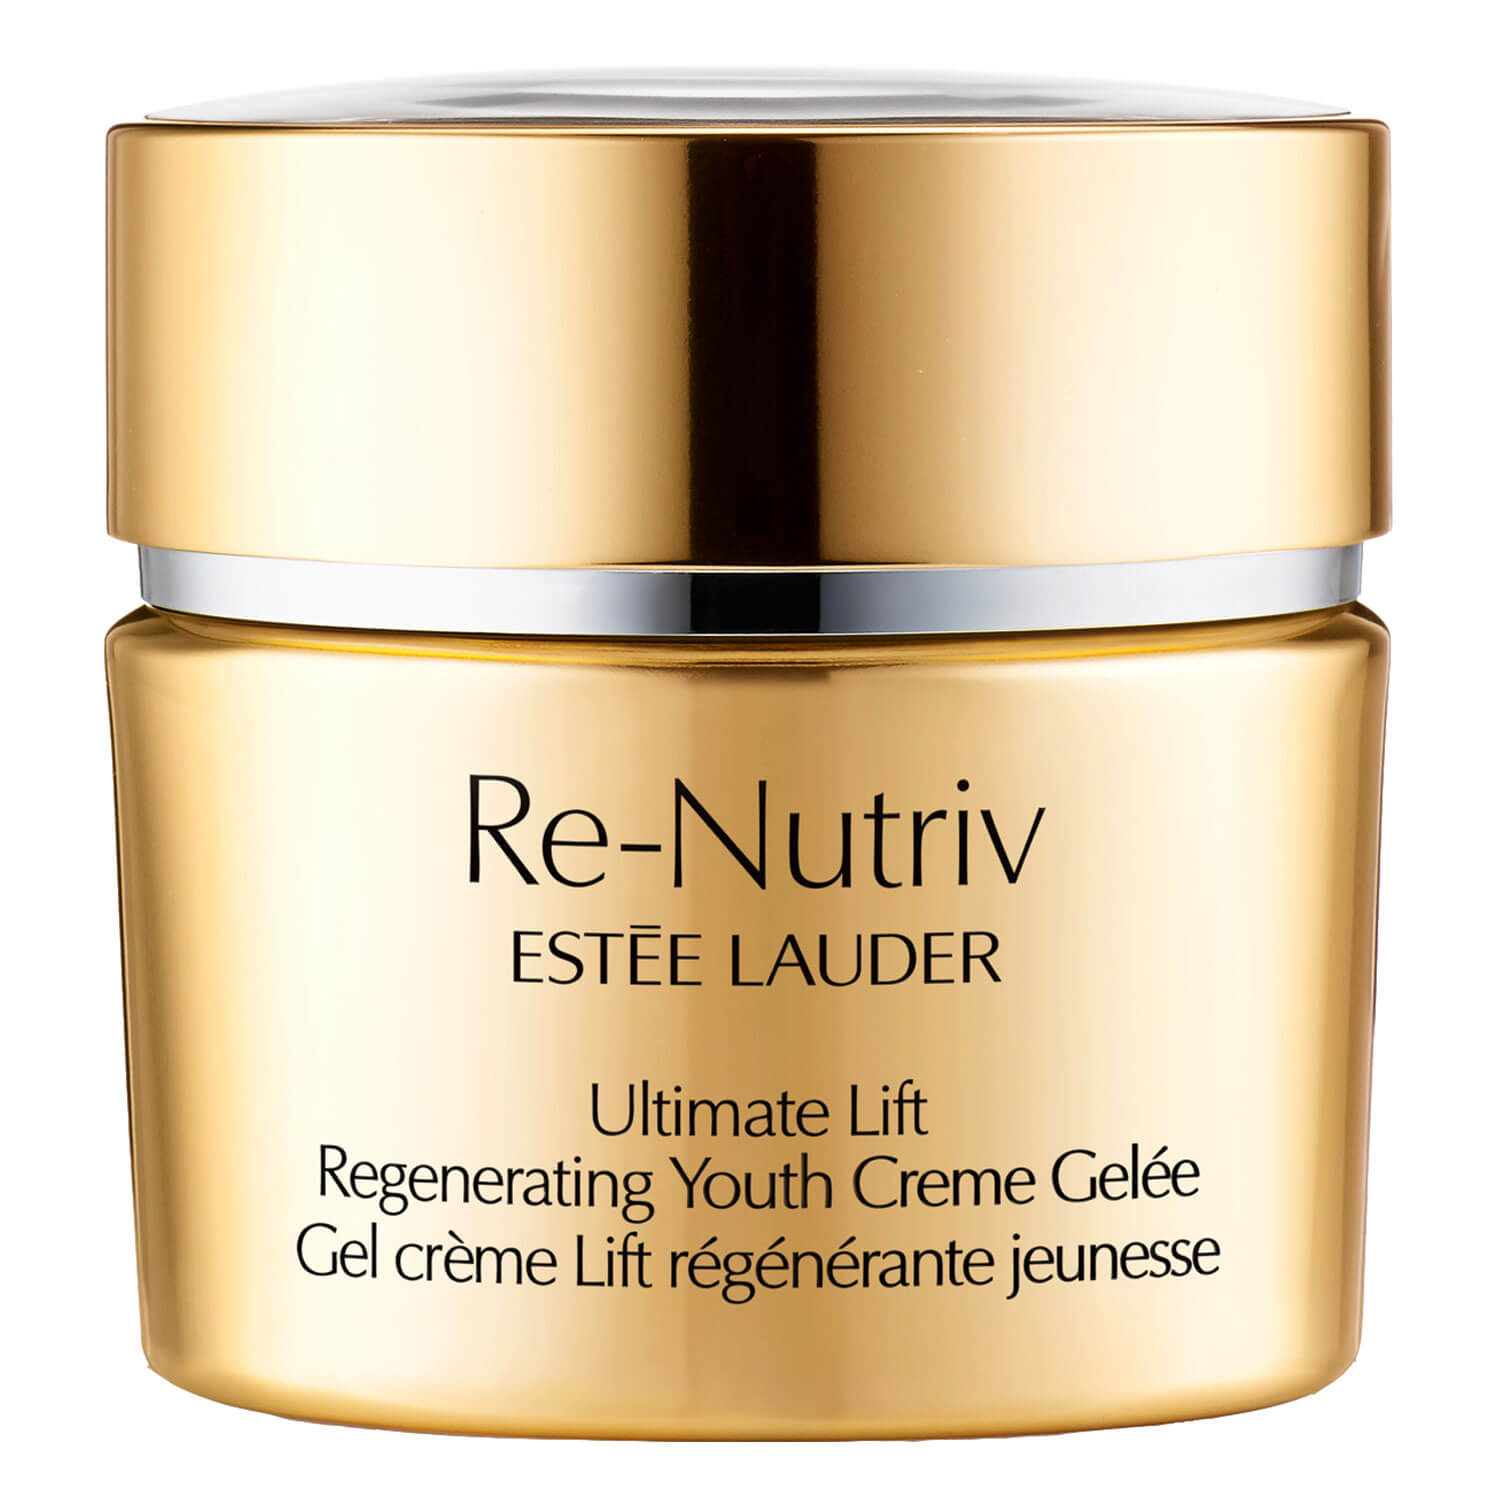 Re-Nutriv - Ultimate Lifting Regenerating Youth Creme Gelée